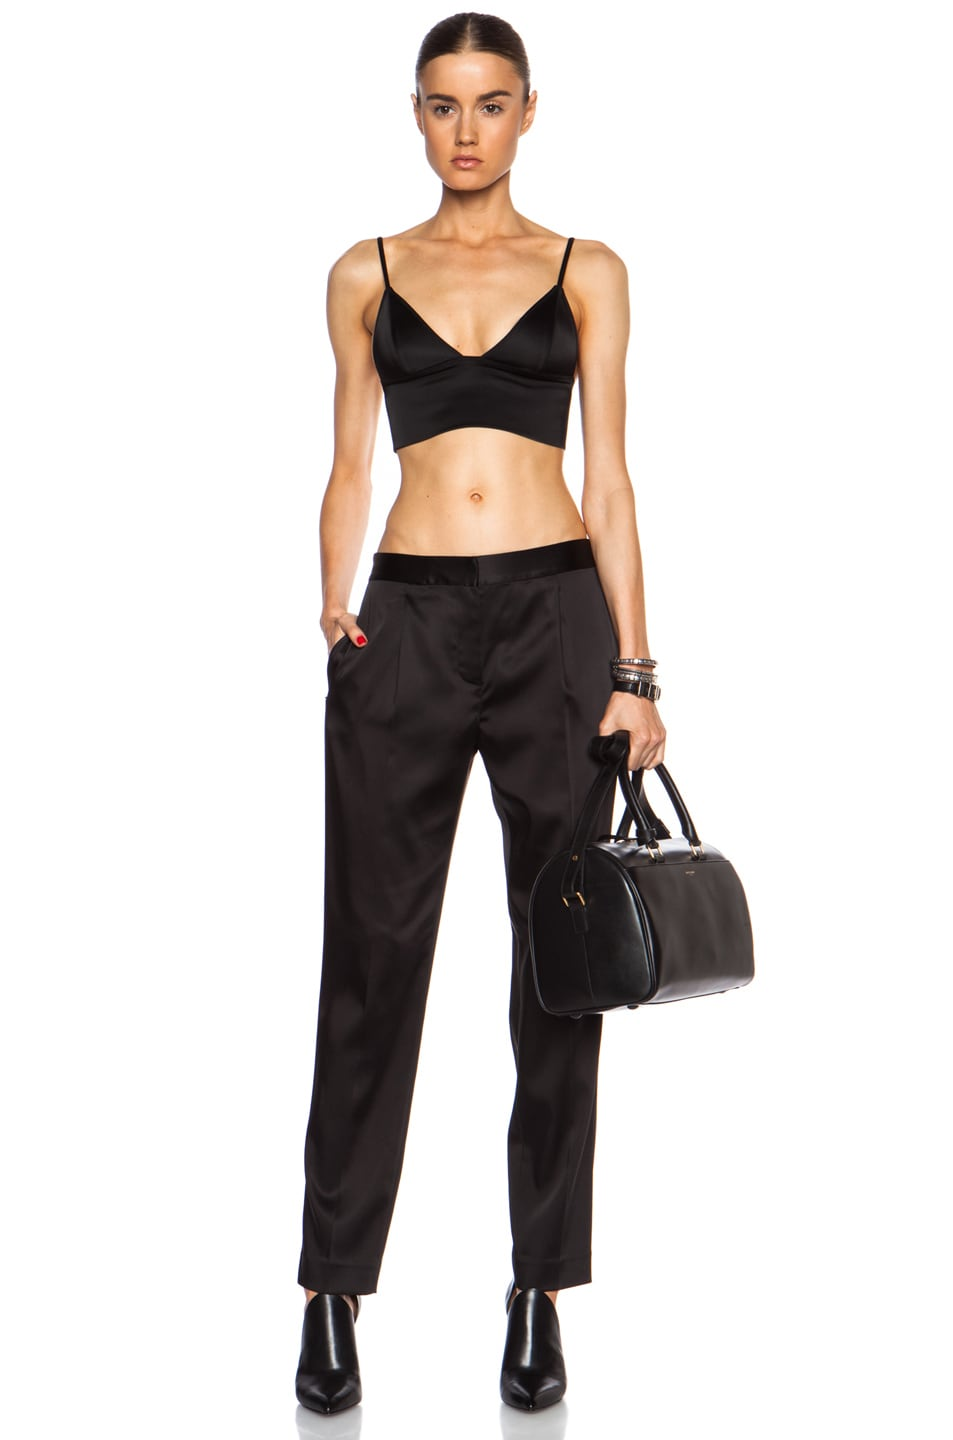 c5262f1f7a4 Image 5 of T by Alexander Wang Satin Triangle Acetate-Blend Bralette in  Black